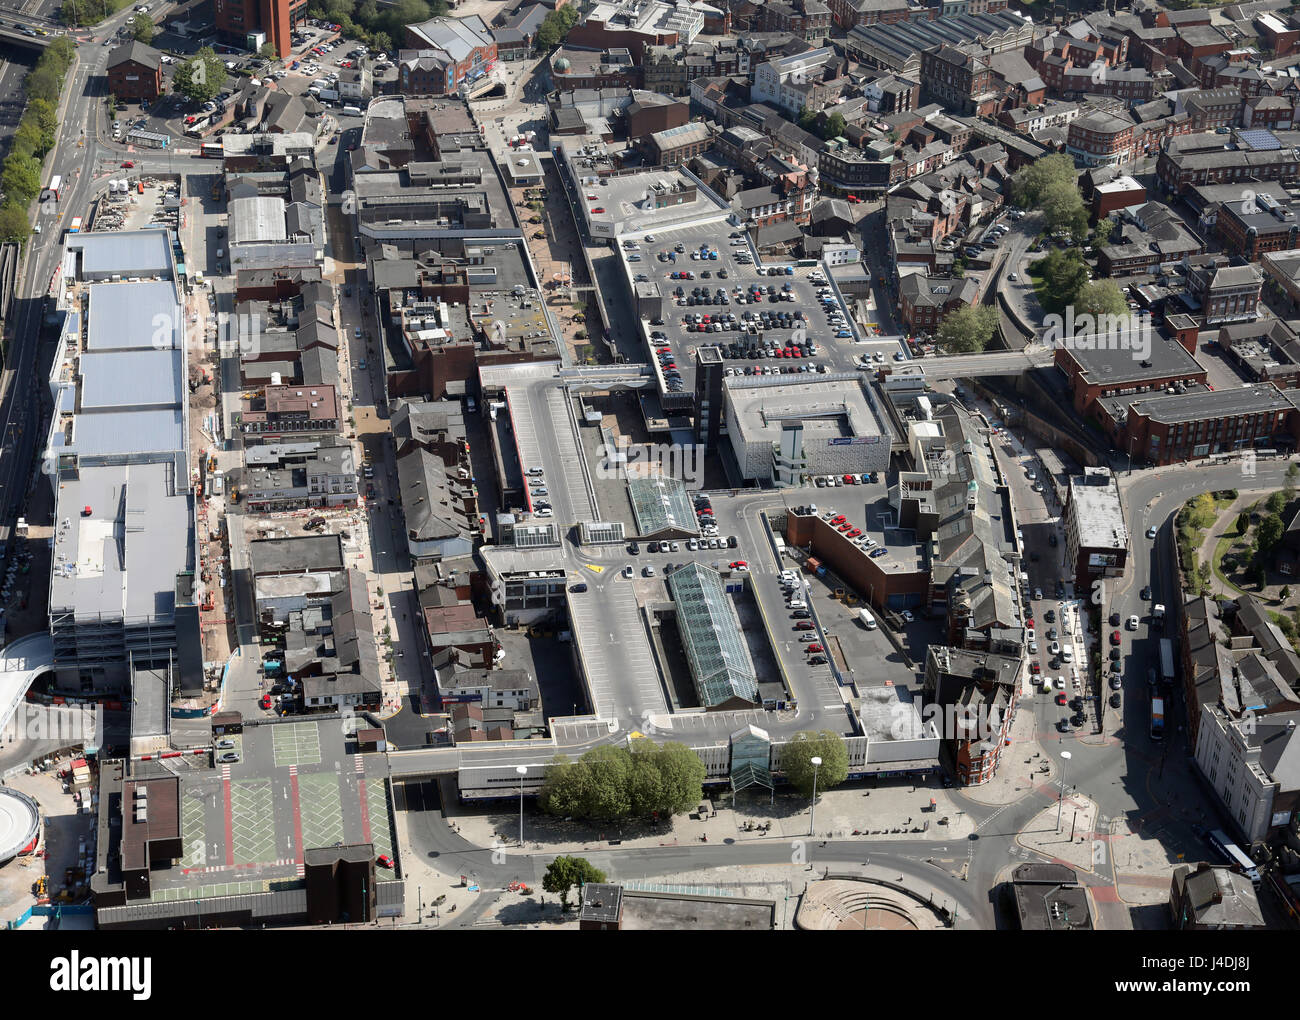 aerial view of Stockport, Manchester, UK - Stock Image